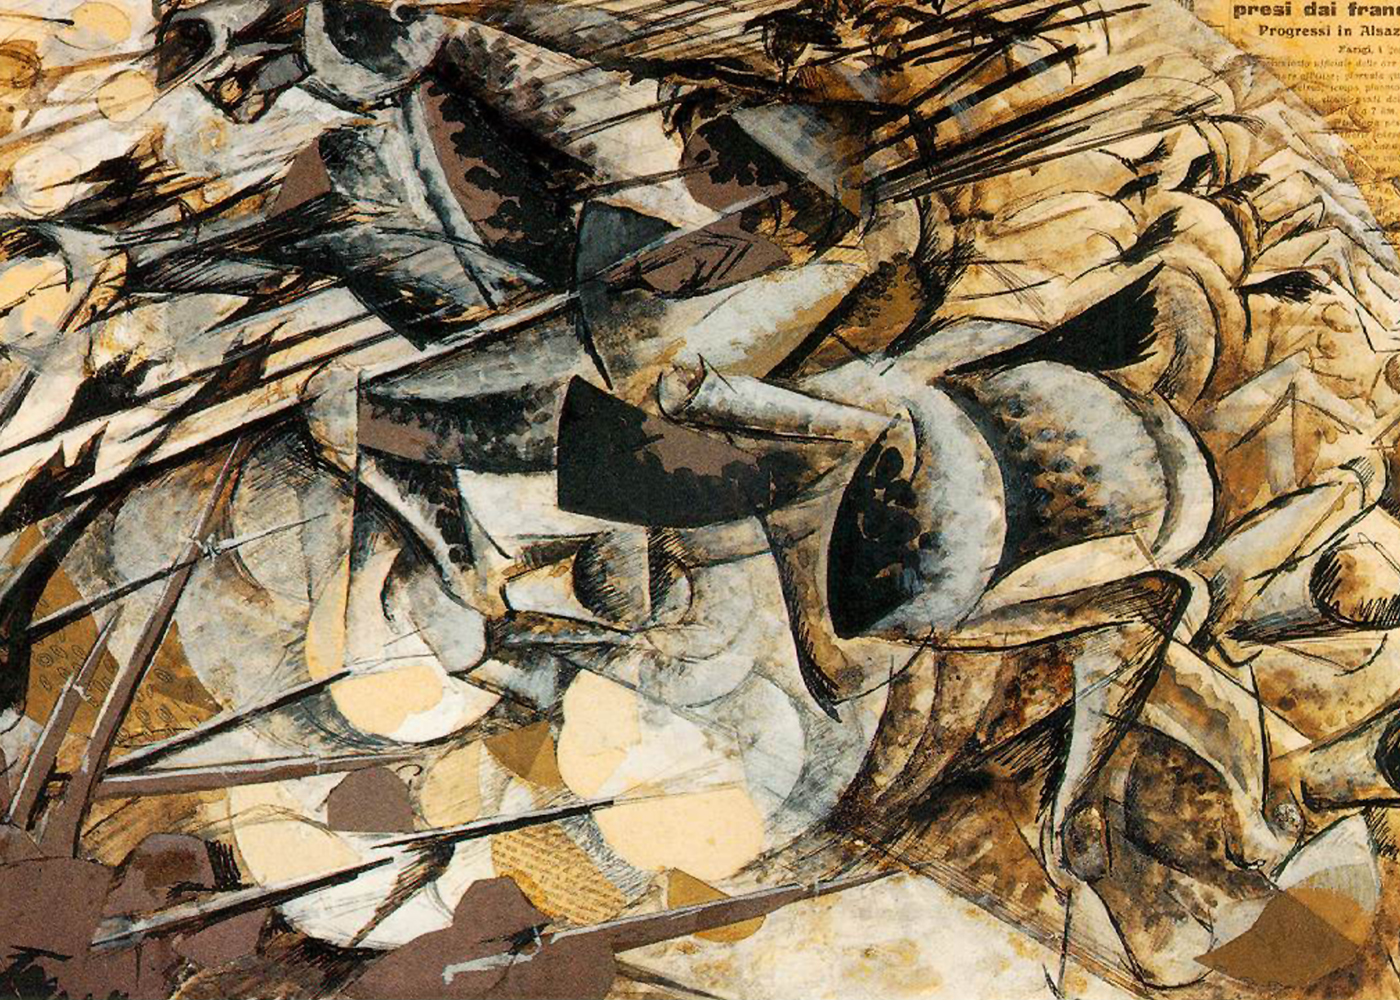 Umberto Boccioni,  Charge of the Lancers , 1915, Collection of Riccardo and Magda Jucker, Milan.